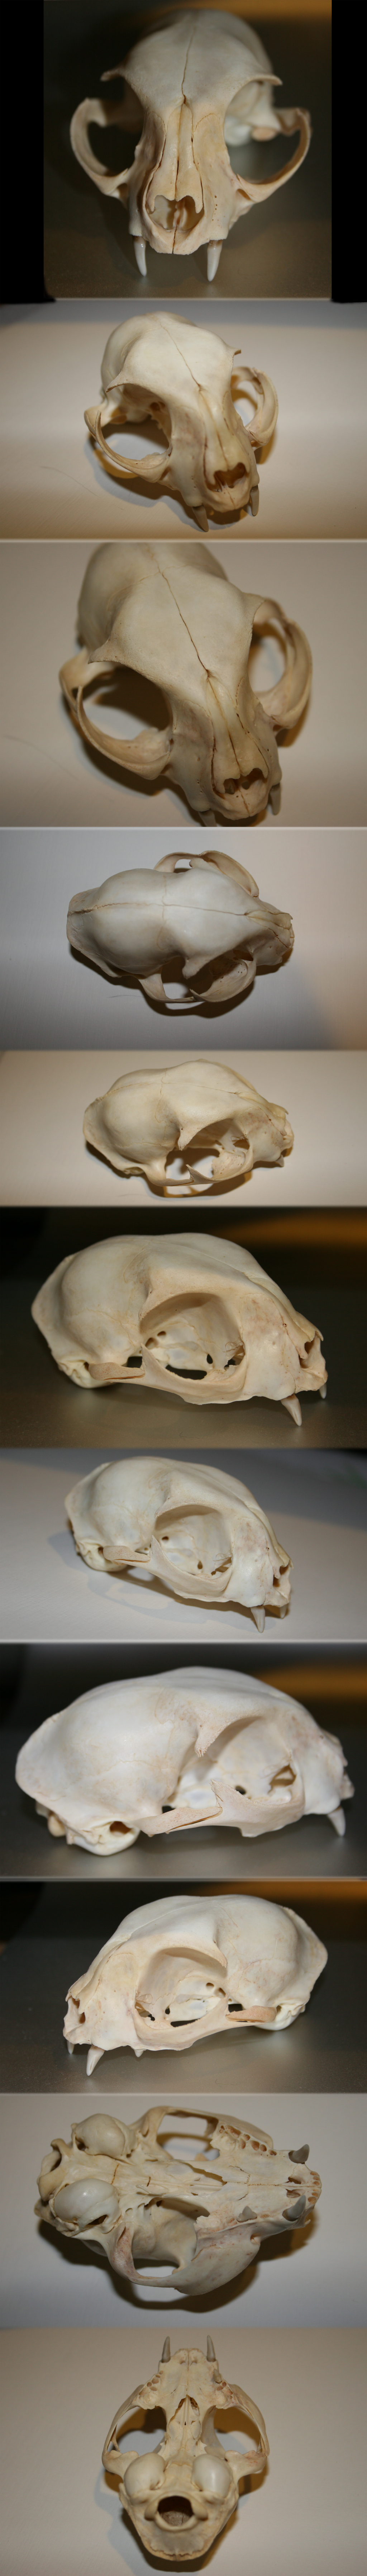 Domestic Cat Skull by Earldense | Skulls | Pinterest | Cat skull ...